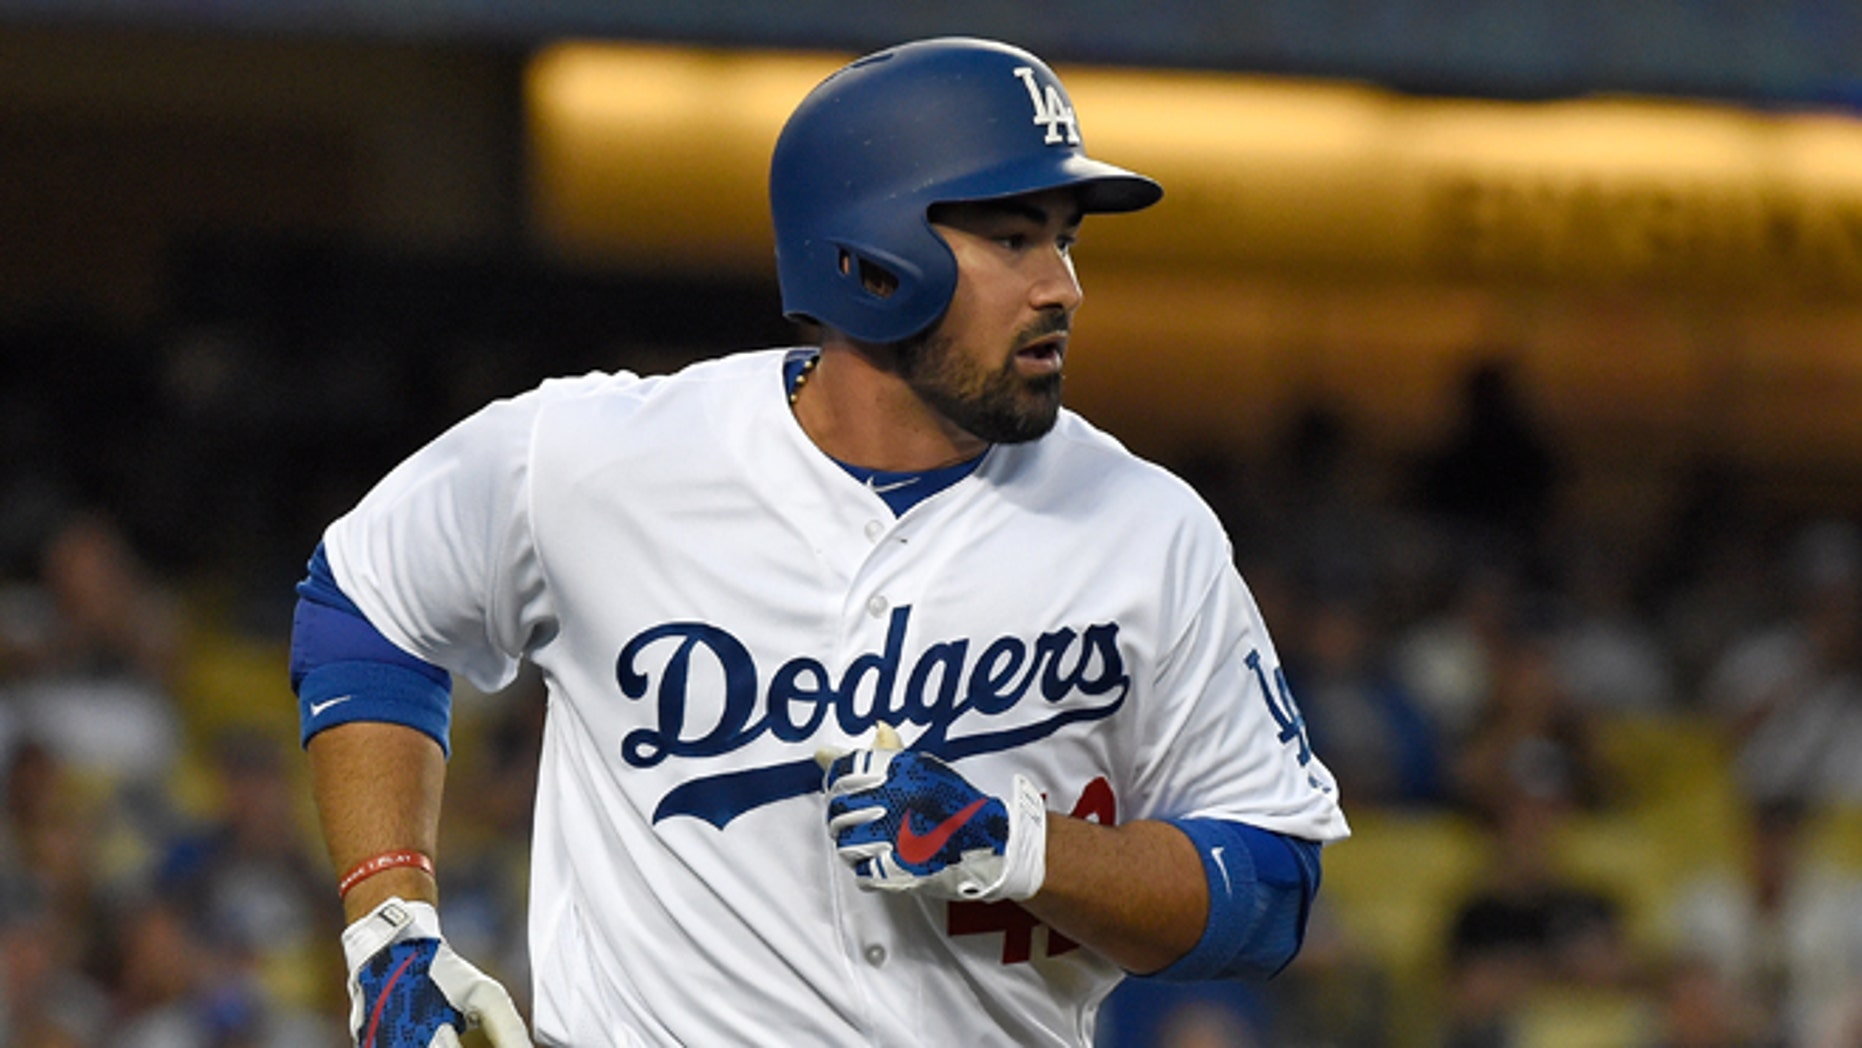 LOS ANGELES, CA - APRIL 15:  Adrian Gonzalez #42 of the Los Angeles Dodgers runs to first base after hitting a single in the first inning against the San Francisco Giants at Dodger Stadium on April 15, 2016 in Los Angeles, California.  (Photo by Lisa Blumenfeld/Getty Images)